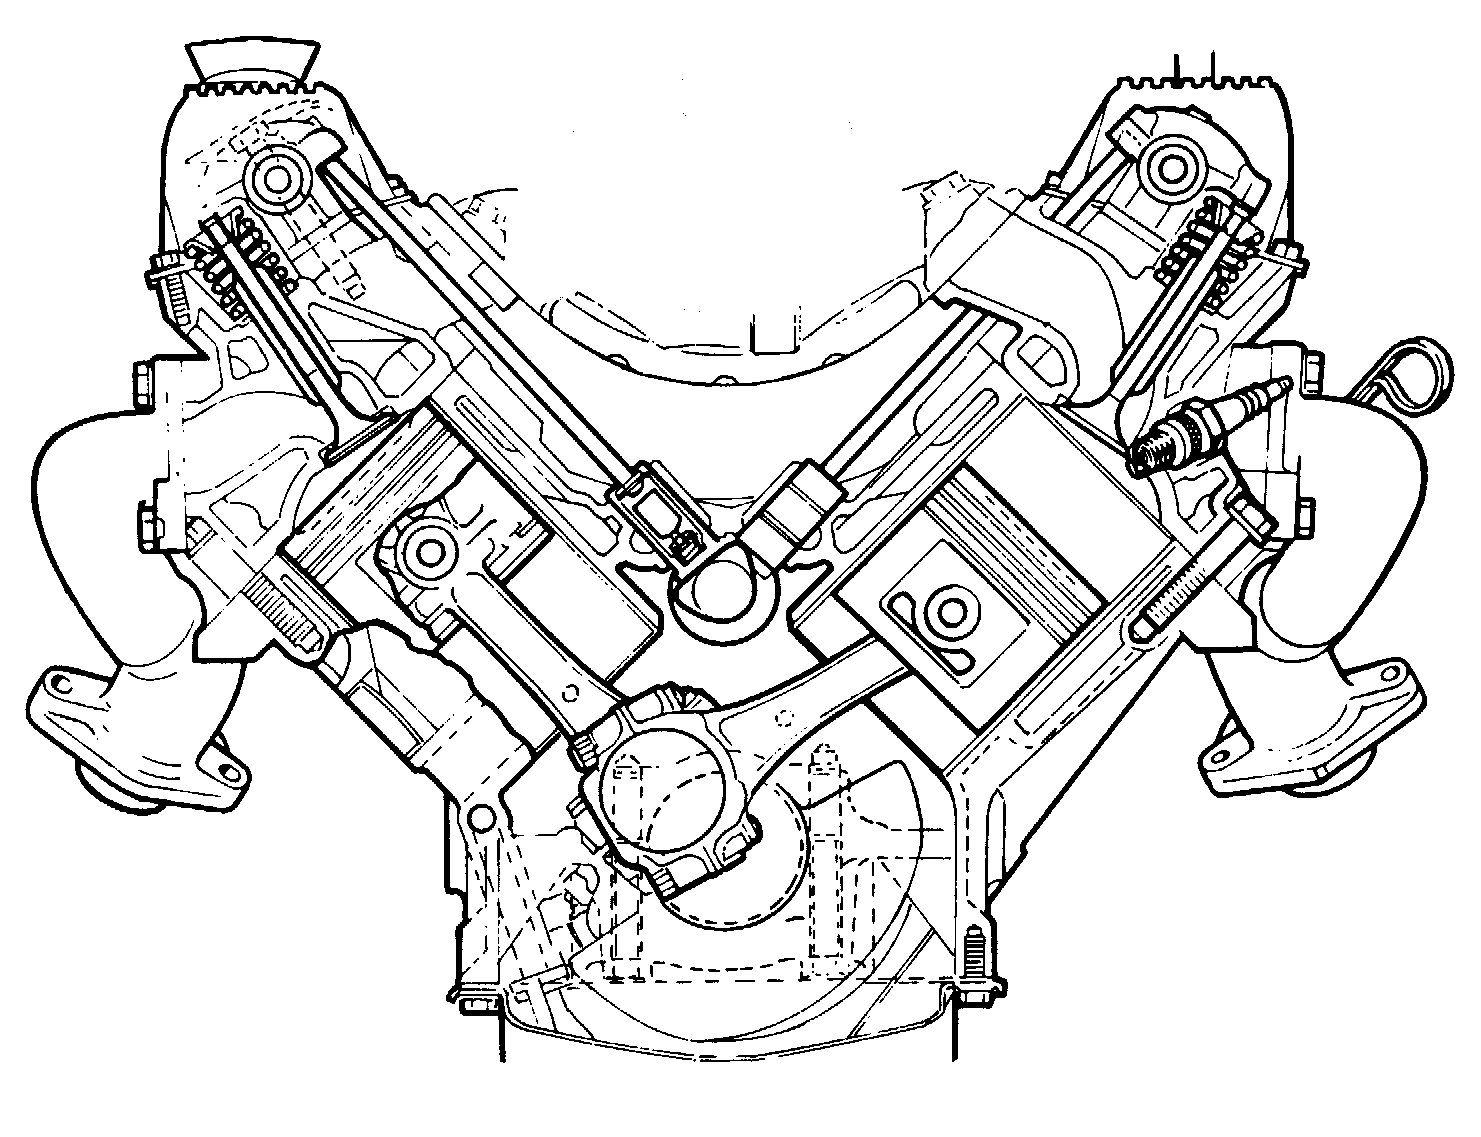 V8 Engine Exploded View Diagram Car V8 Free Engine Image For User Manual Download